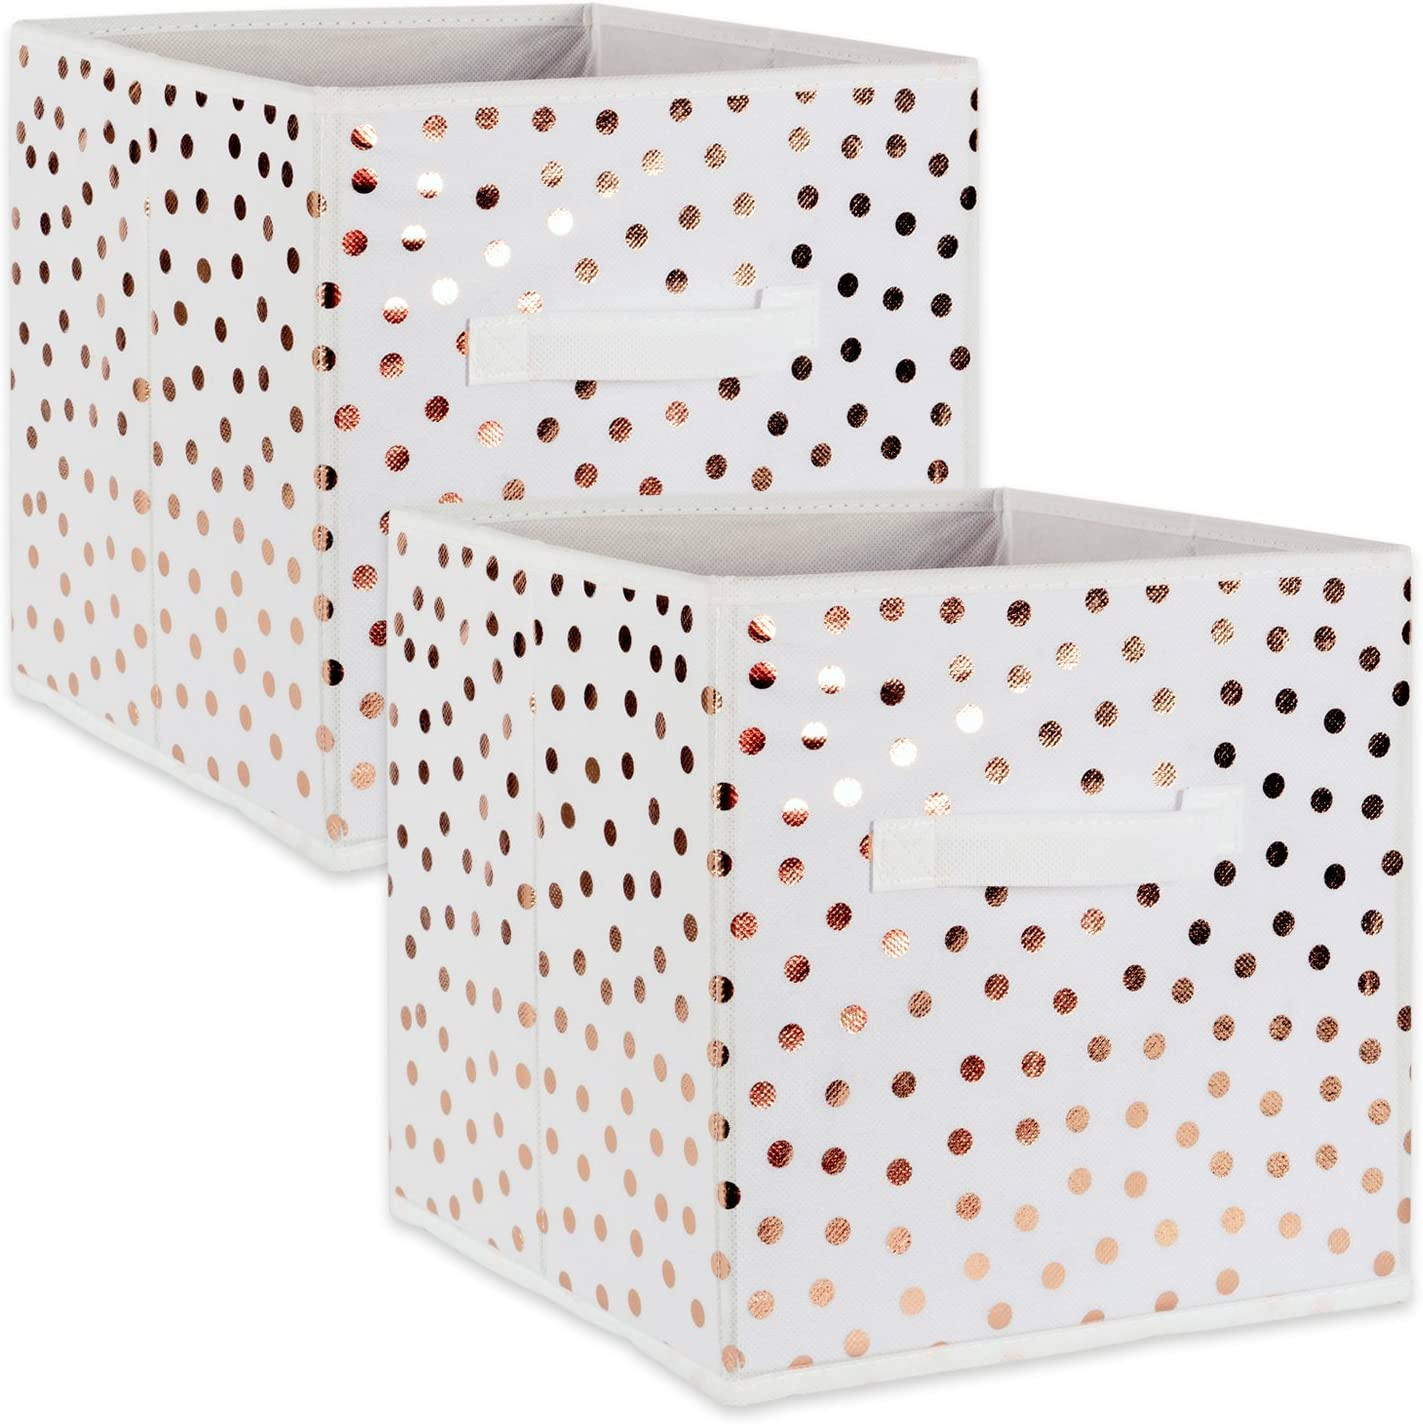 "DII Fabric Storage Bins for Nursery, Offices, & Home Organization, Containers Are Made To Fit Standard Cube Organizers (11x11x11"") White with Copper Dots - Set of 2"